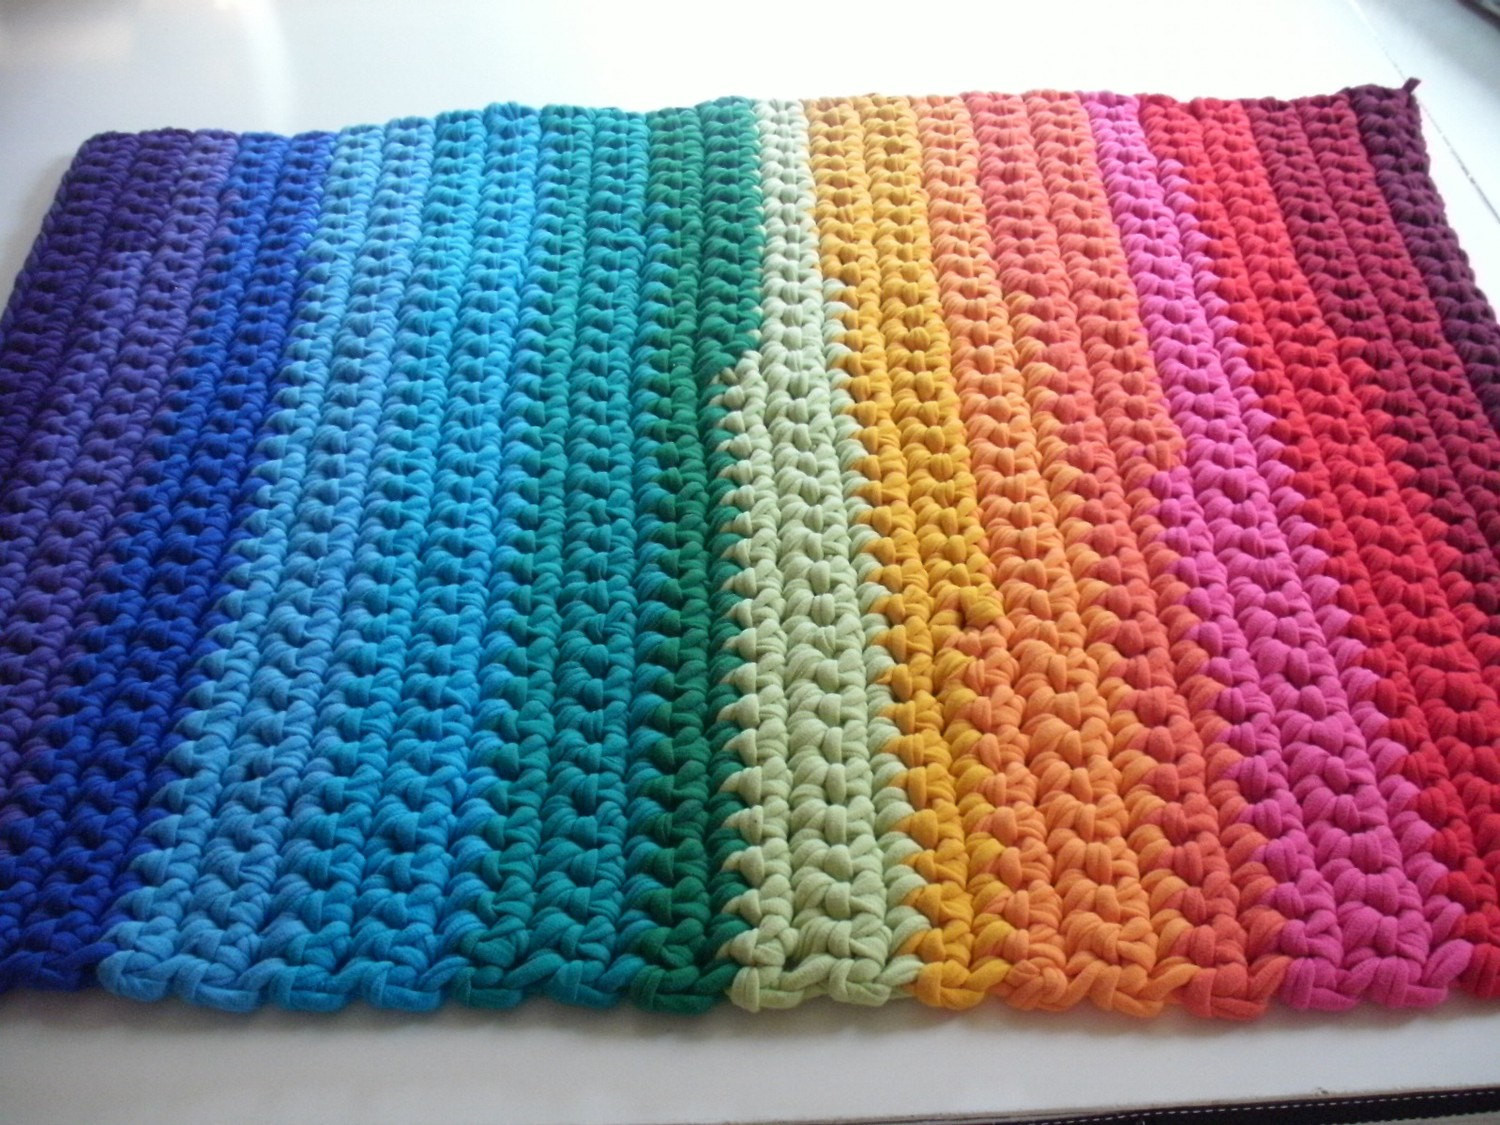 Crochet Rug Patterns Best Of Crocheted Yarn Rugs Free Patterns Crochet and Knitting Of Amazing 41 Images Crochet Rug Patterns